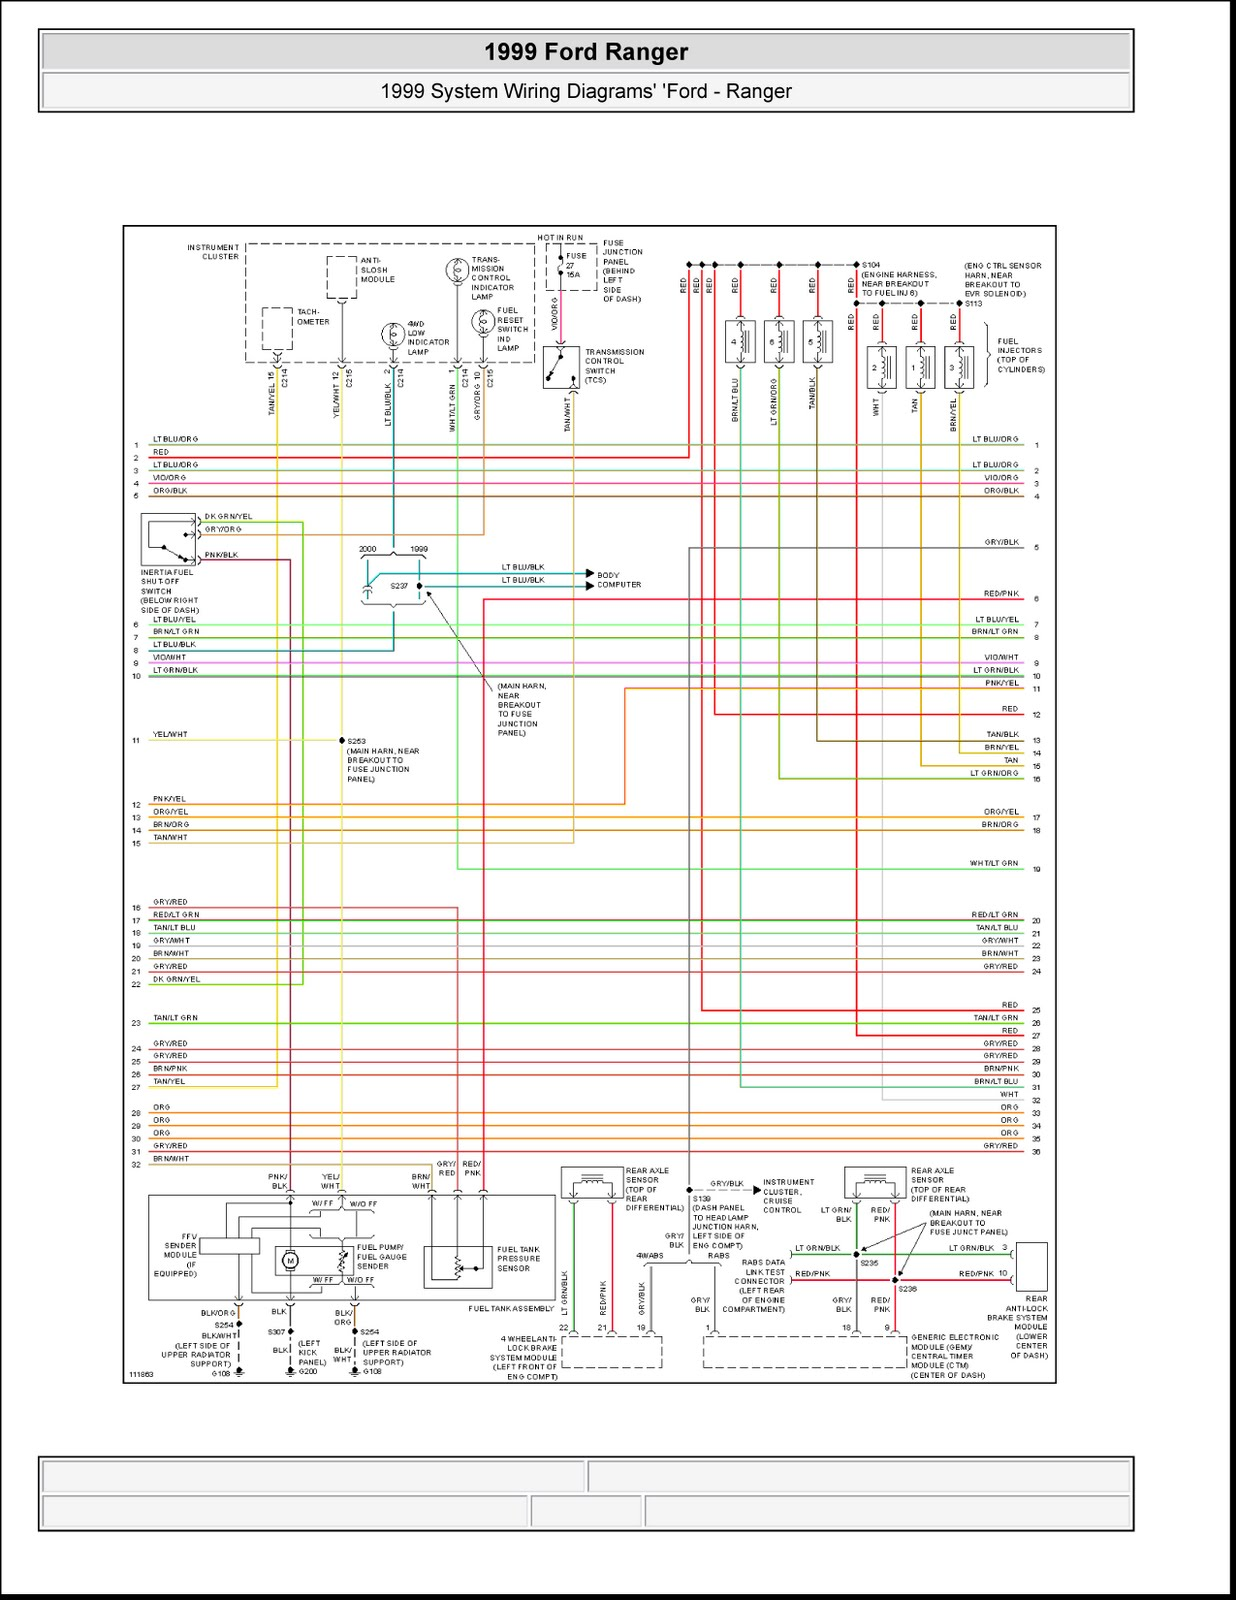 1999 Ford Ranger Engine Diagram 2004 Dodge Durango Stereo Wiring System Diagrams 4 Images